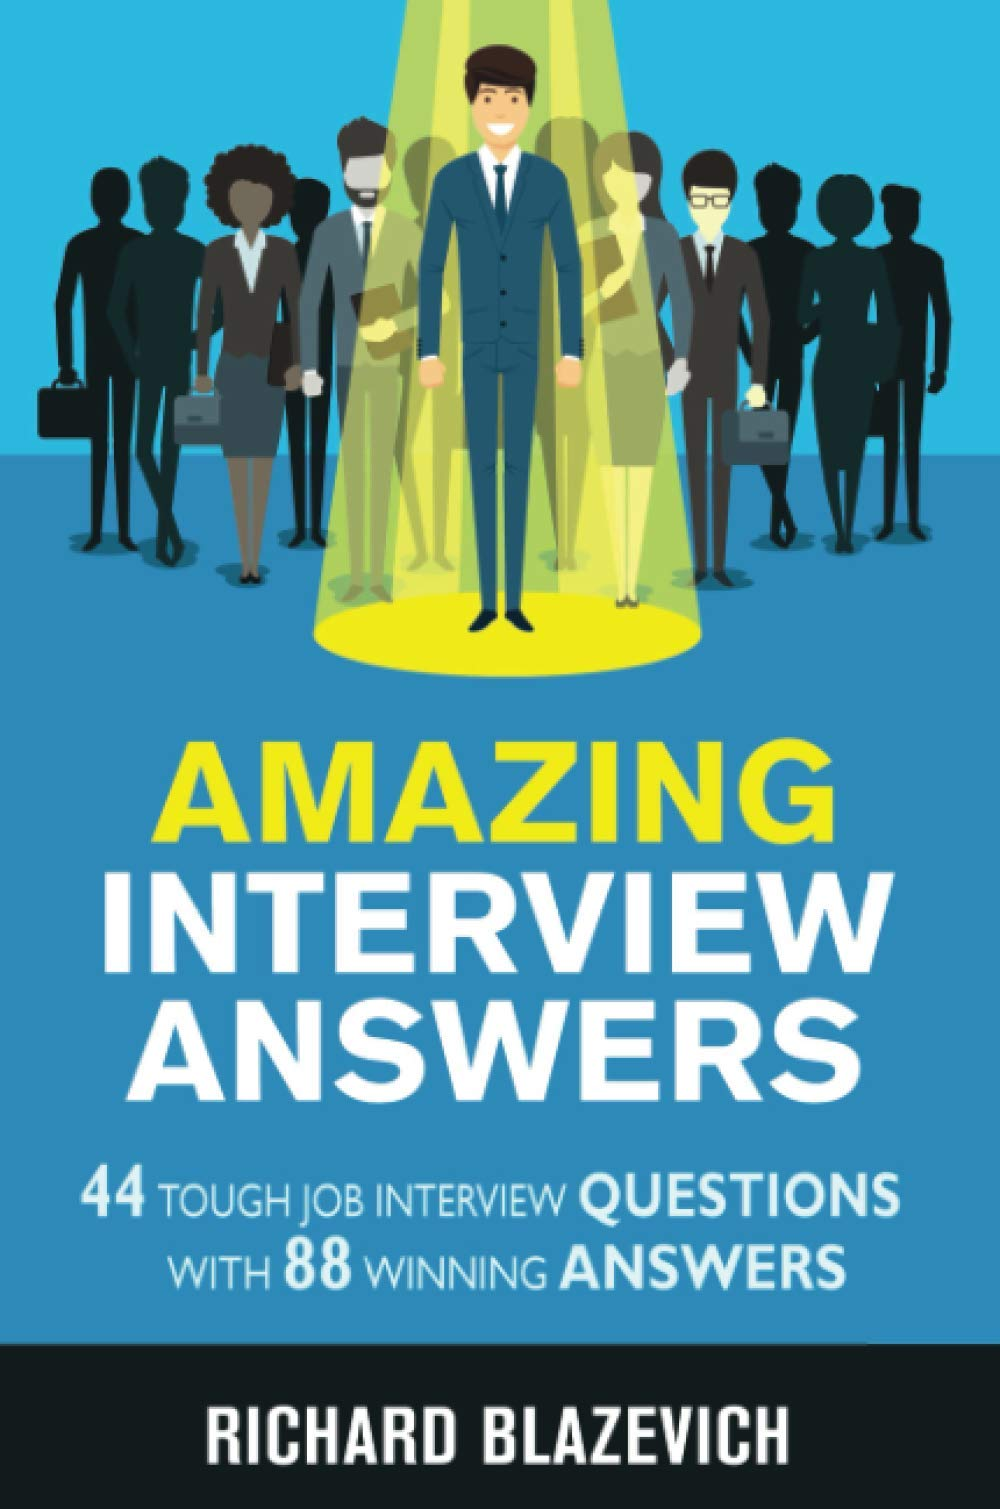 Image for Amazing Interview Answers: 44 Tough Job Interview Questions with 88 Winning Answers